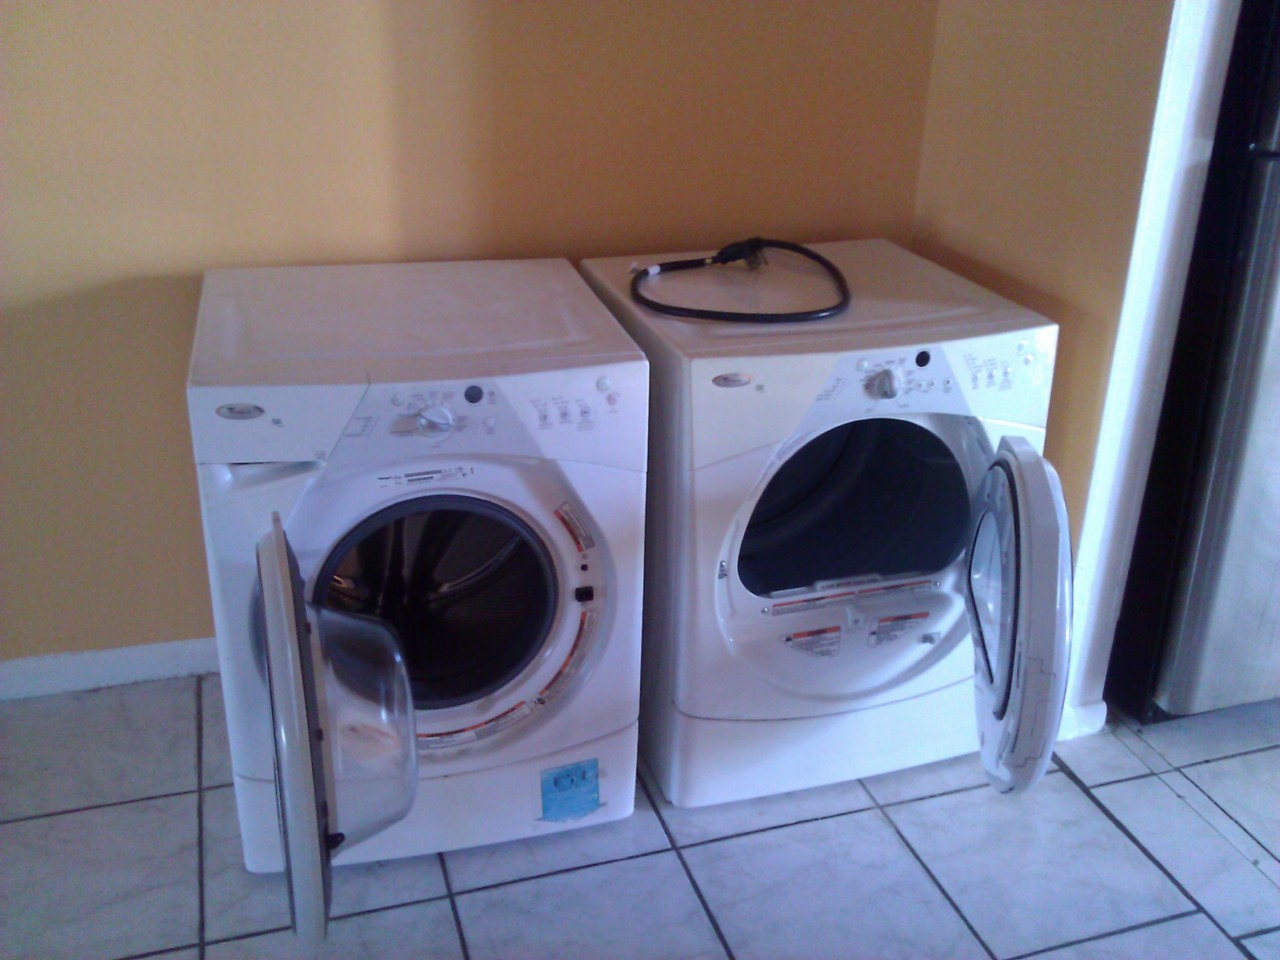 Whirlpool duet washer dryer set front load stackable ebay - Whirlpool duet washer and dryer ...